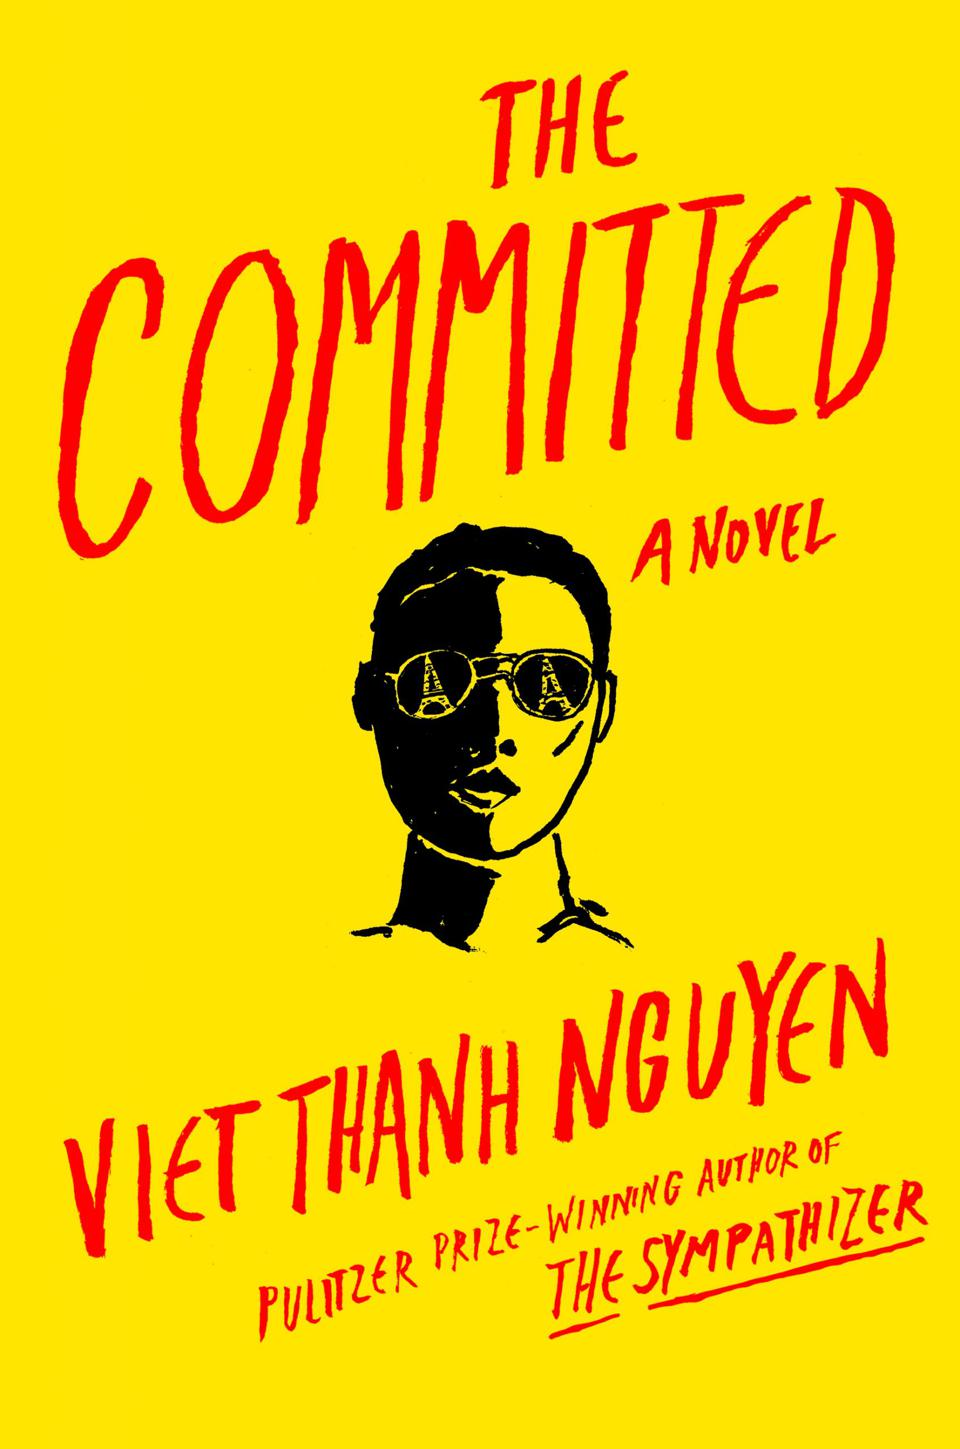 the committed novel viet thanh nguyen book cover grove press